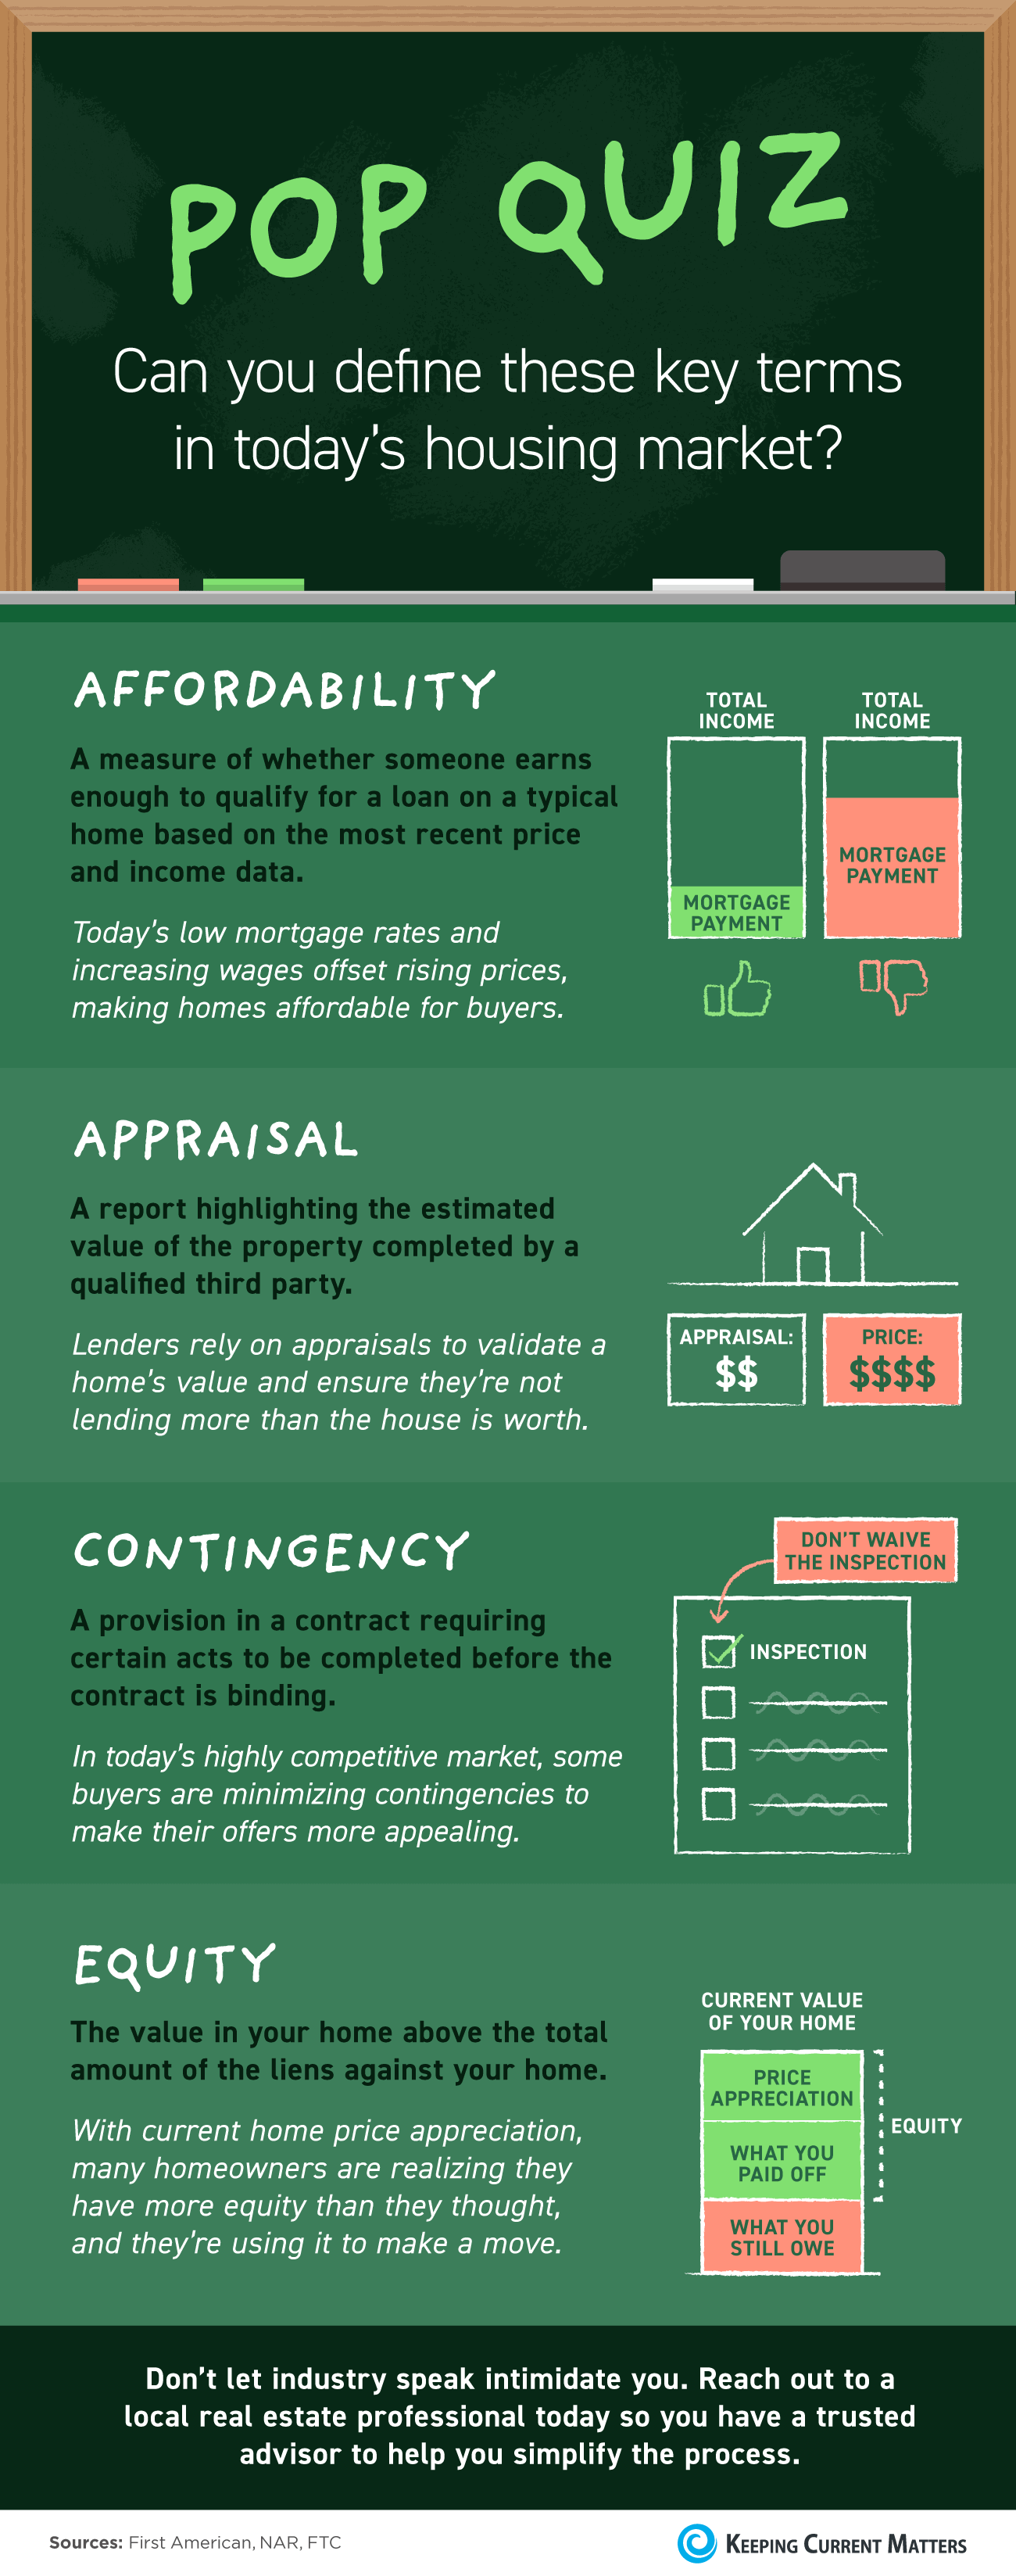 Pop Quiz: Can You Define These Key Terms in Today's Housing Market? [INFOGRAPHIC] | Keeping Current Matters